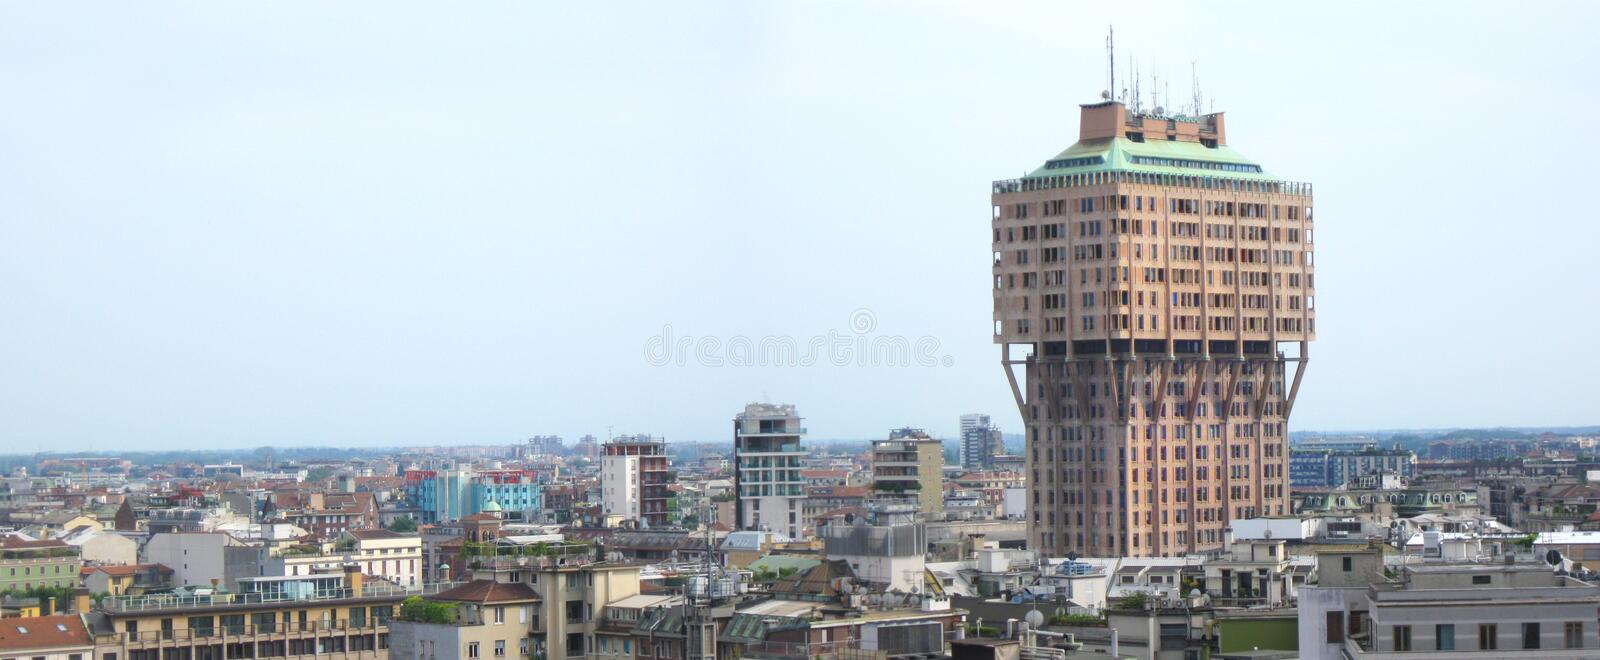 Skyline Of Milan Stock Photo